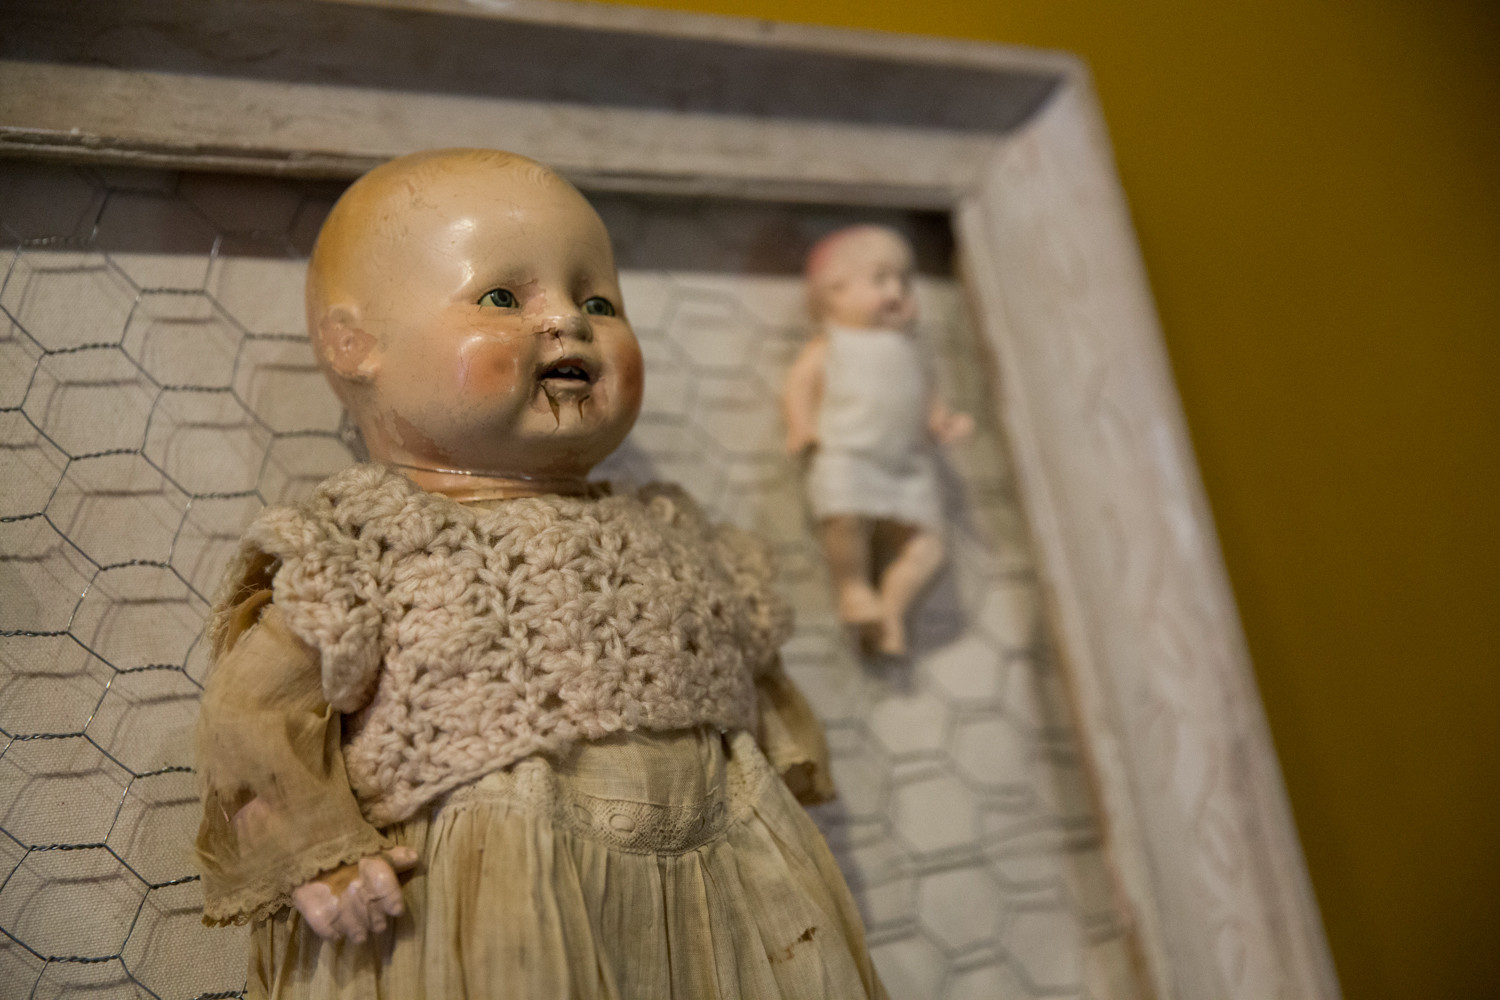 A detail of a piece featured at the Creepy Baby exhibit at An Beal Bocht Cafe.